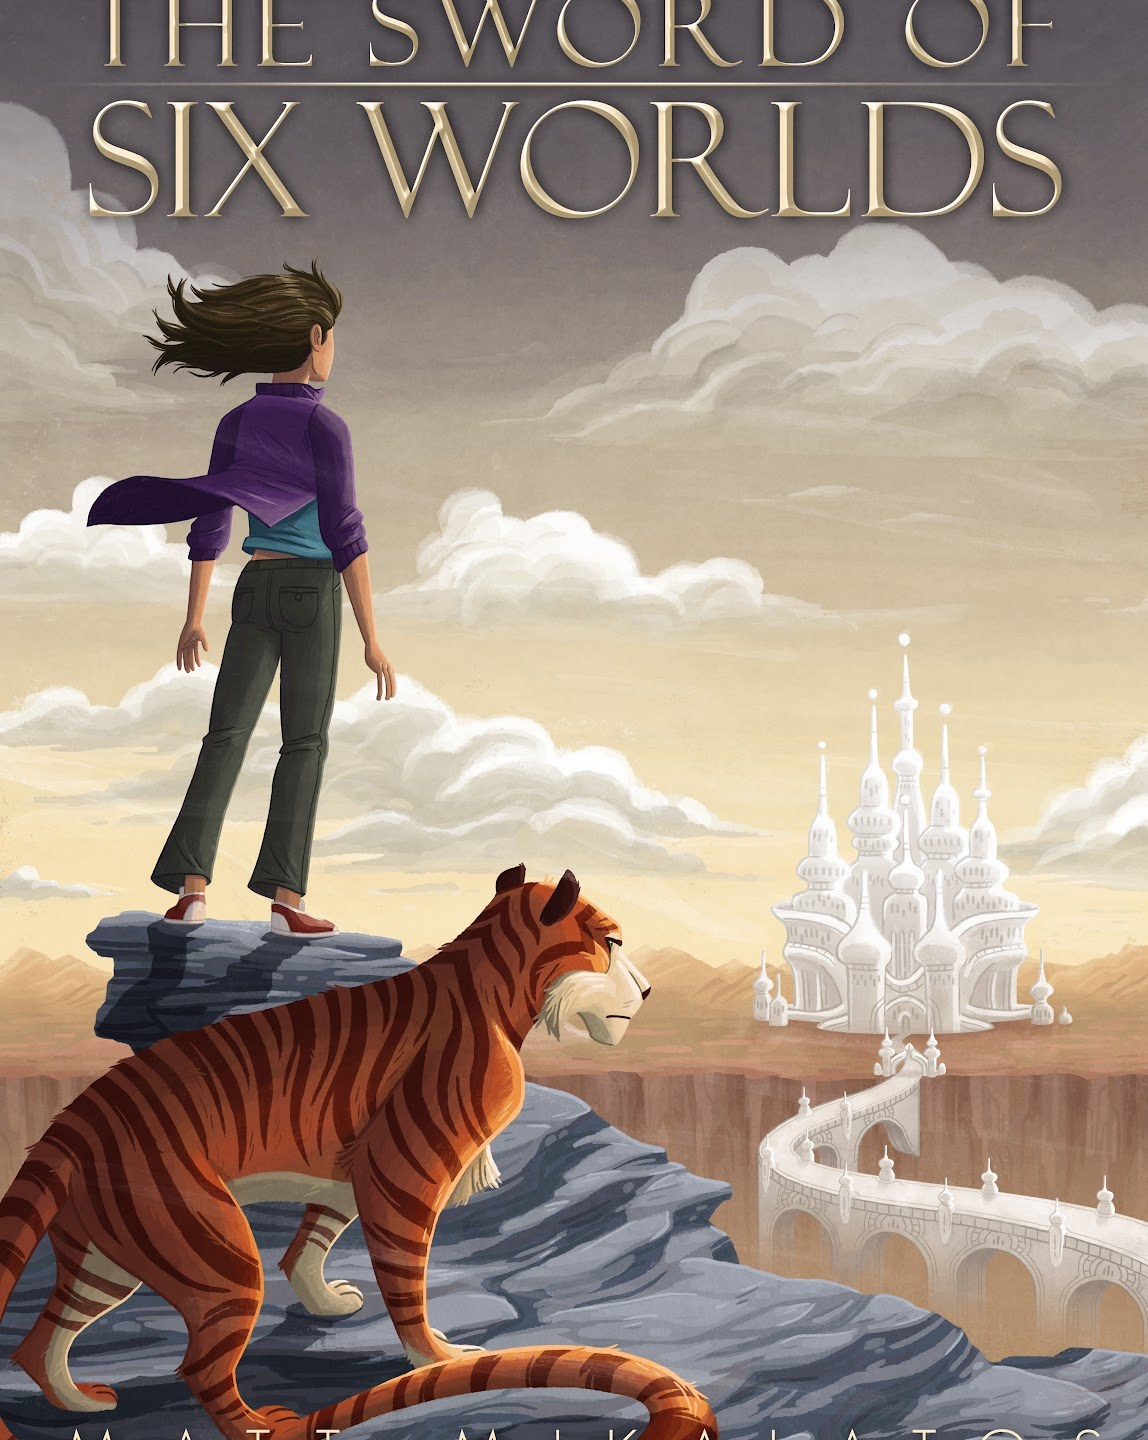 The Sword of Six Worlds (Book 1) by Matt Mikalatos